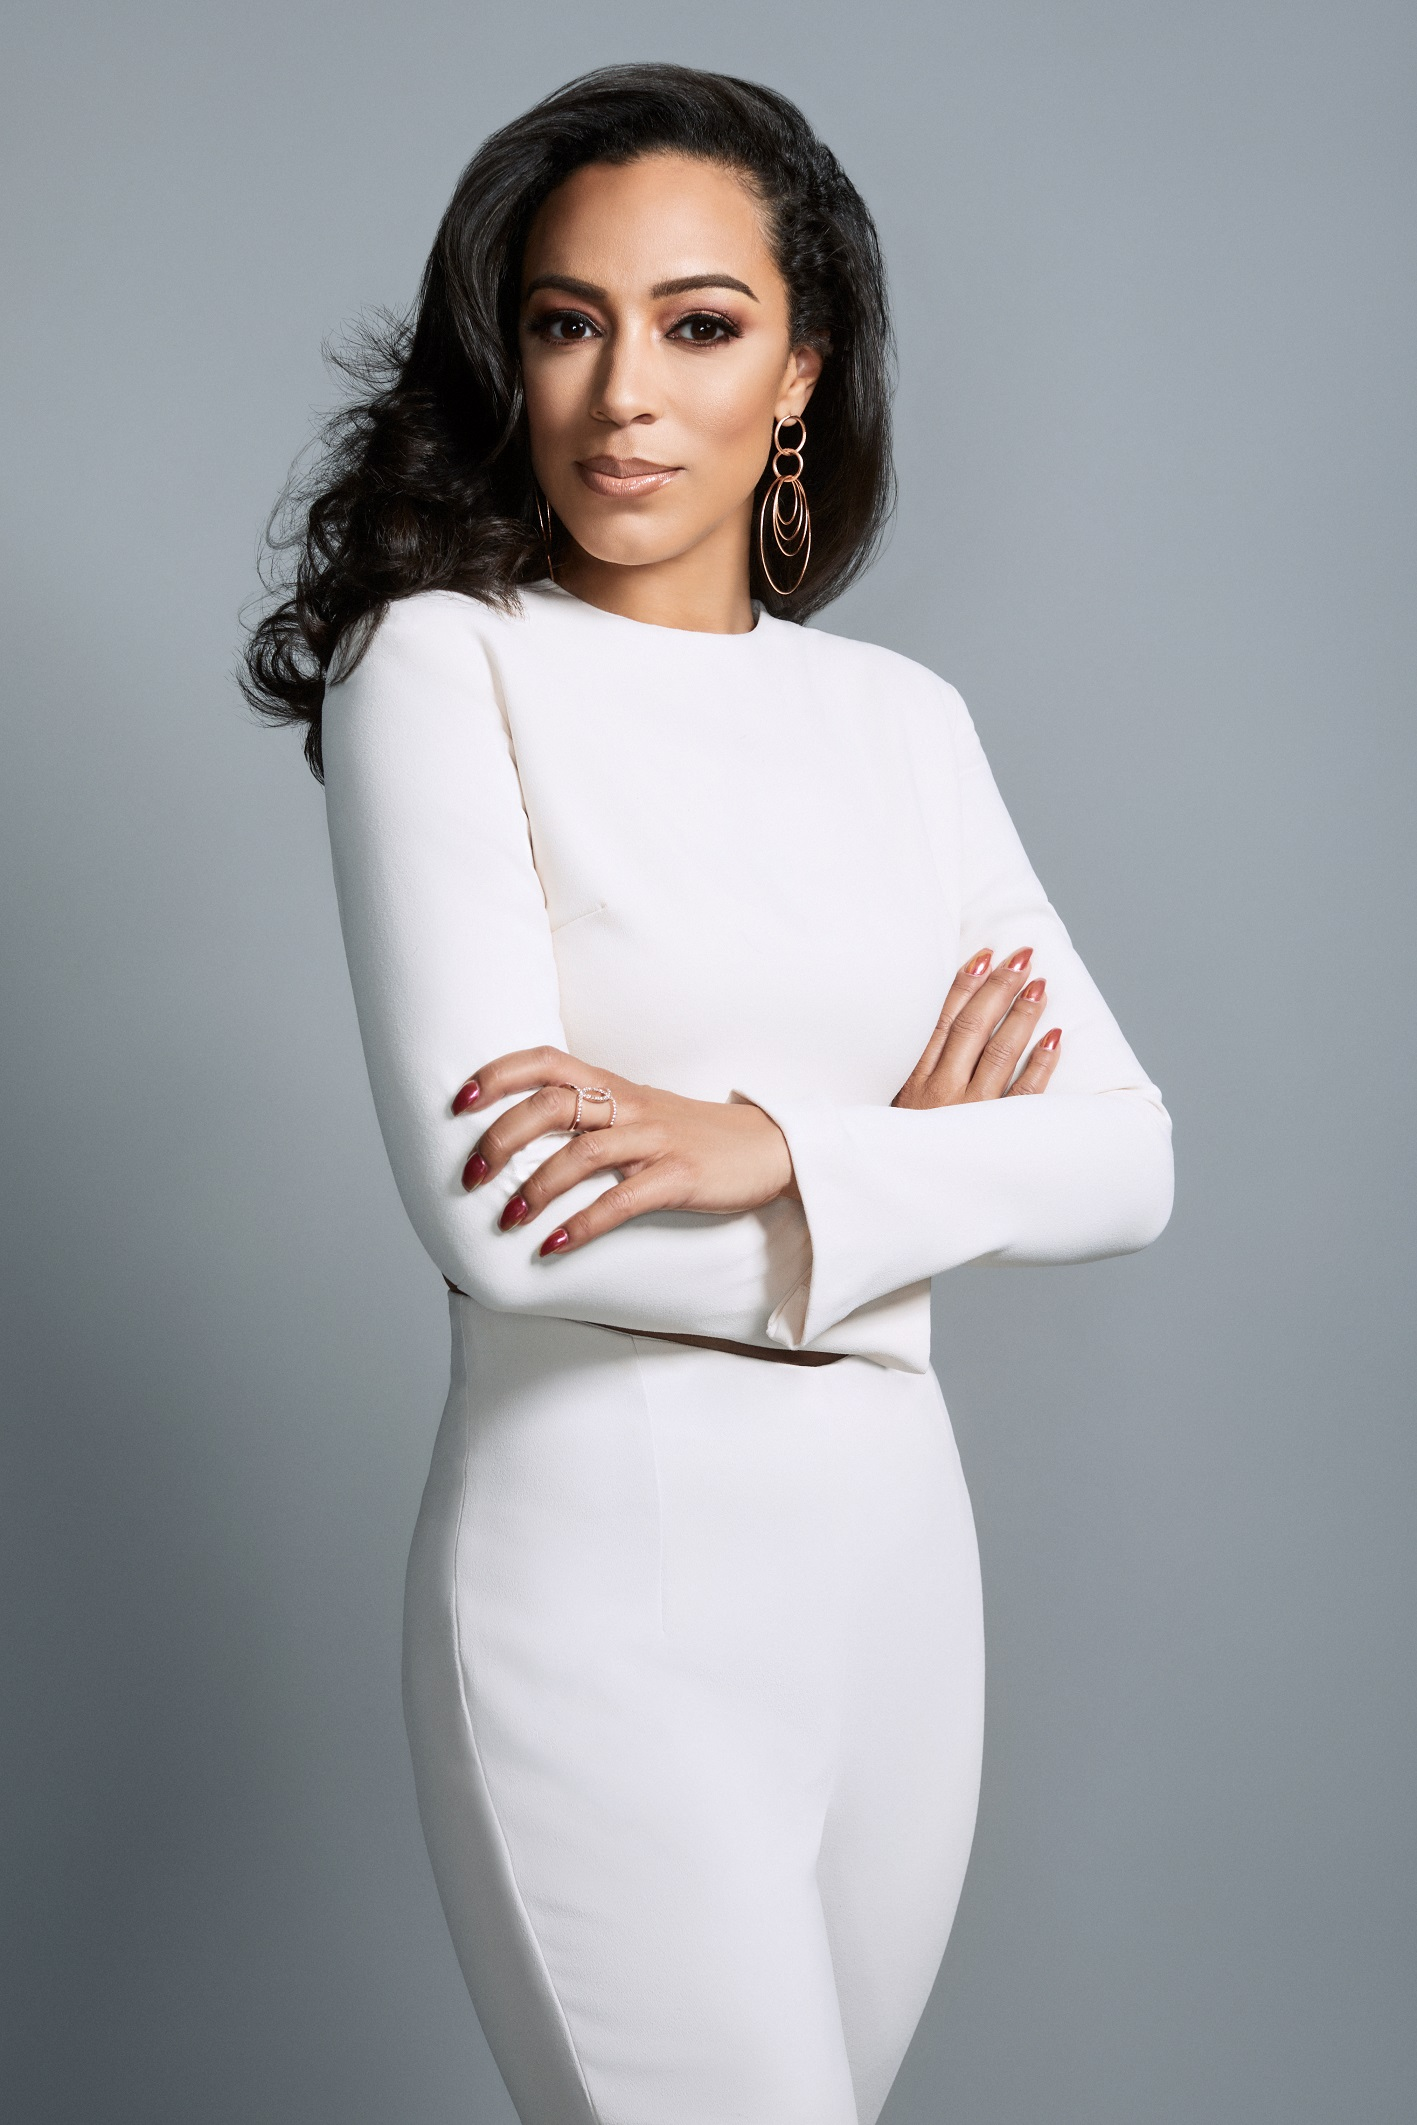 Angela Rye, principal and CEO of IMPACT Strategies, lawyer and political strategist, will serve as the keynote speaker at Kent State University's annual Martin Luther King Jr. Celebration. The event will take place Jan. 23 at 3:30 p.m. in the Kent Student Center Ballroom. (Photo provided by Angela Rye)